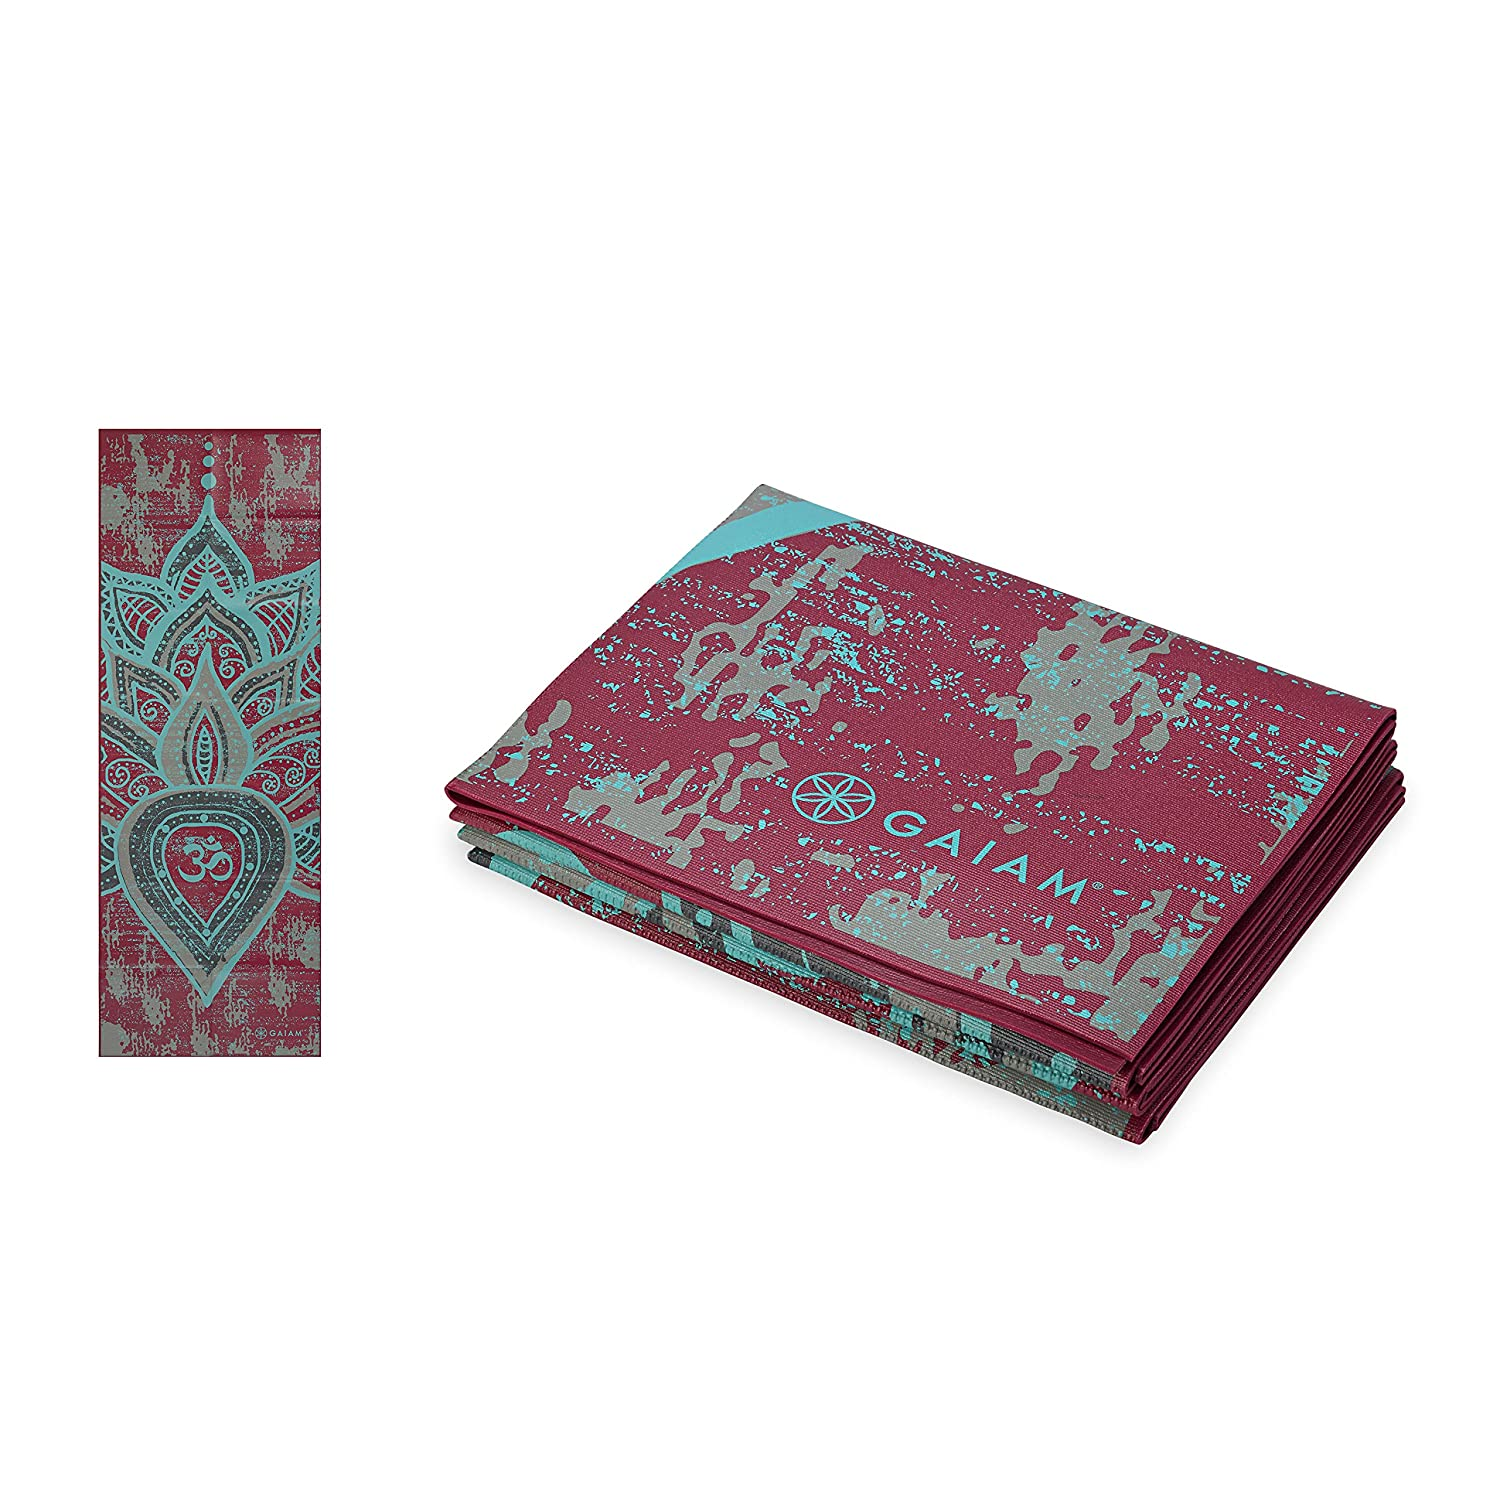 dreamgear fitness get neo cheap quotations shopping find deals best on yoga bundle mat in line w travel guides fit